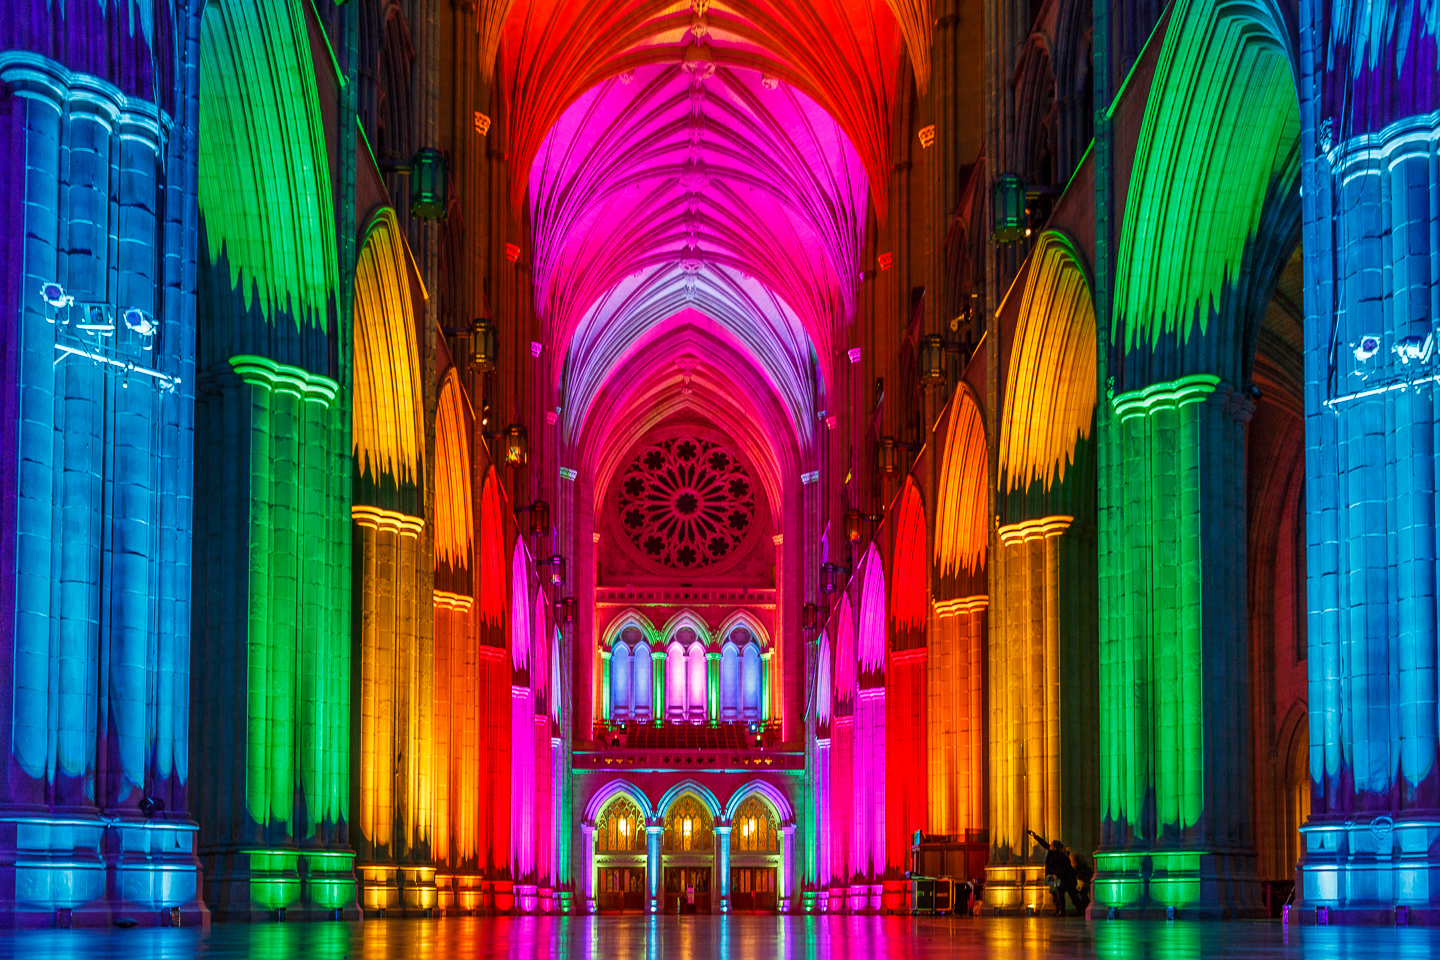 lighting, cathedral. Washington, DC, special event, lights and silence,